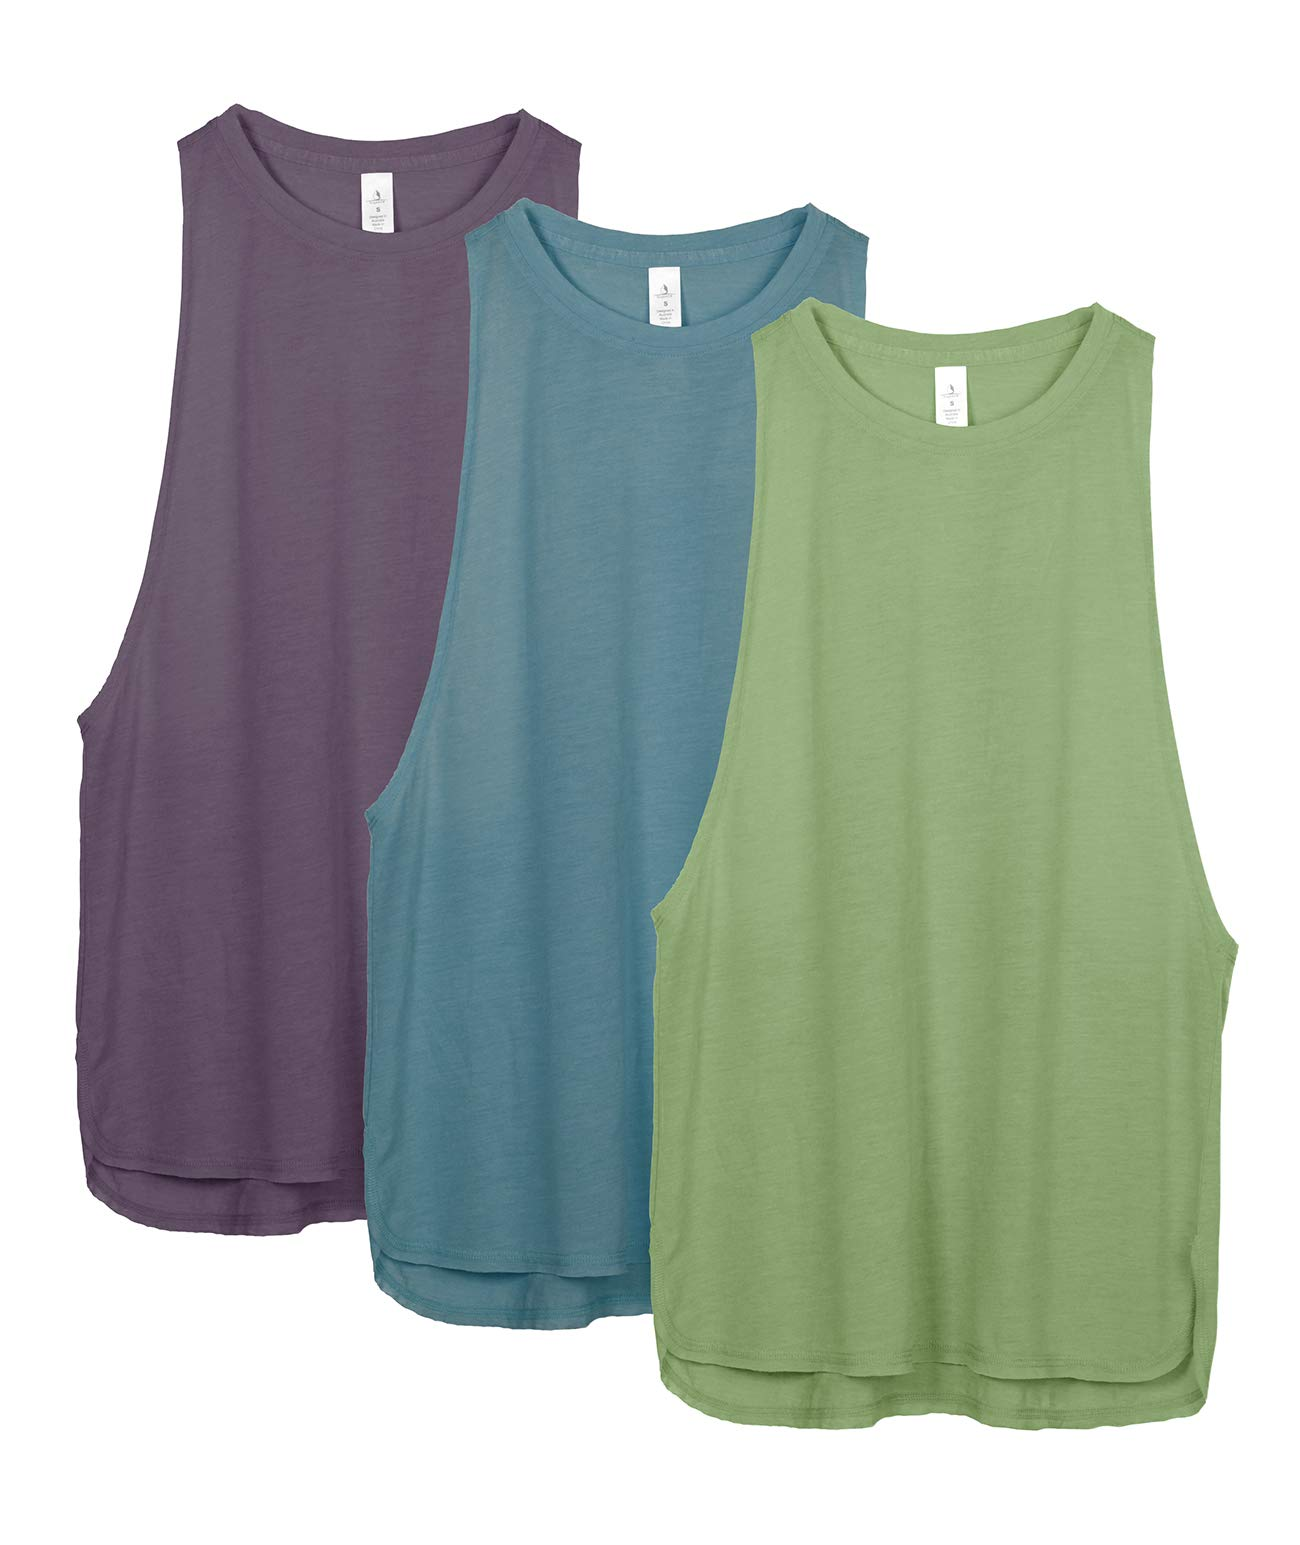 icyzone Workout Tank Tops for Women Running Muscle Tank Sport Exercise Gym Yoga Tops Running Muscle Tanks Pack of 3